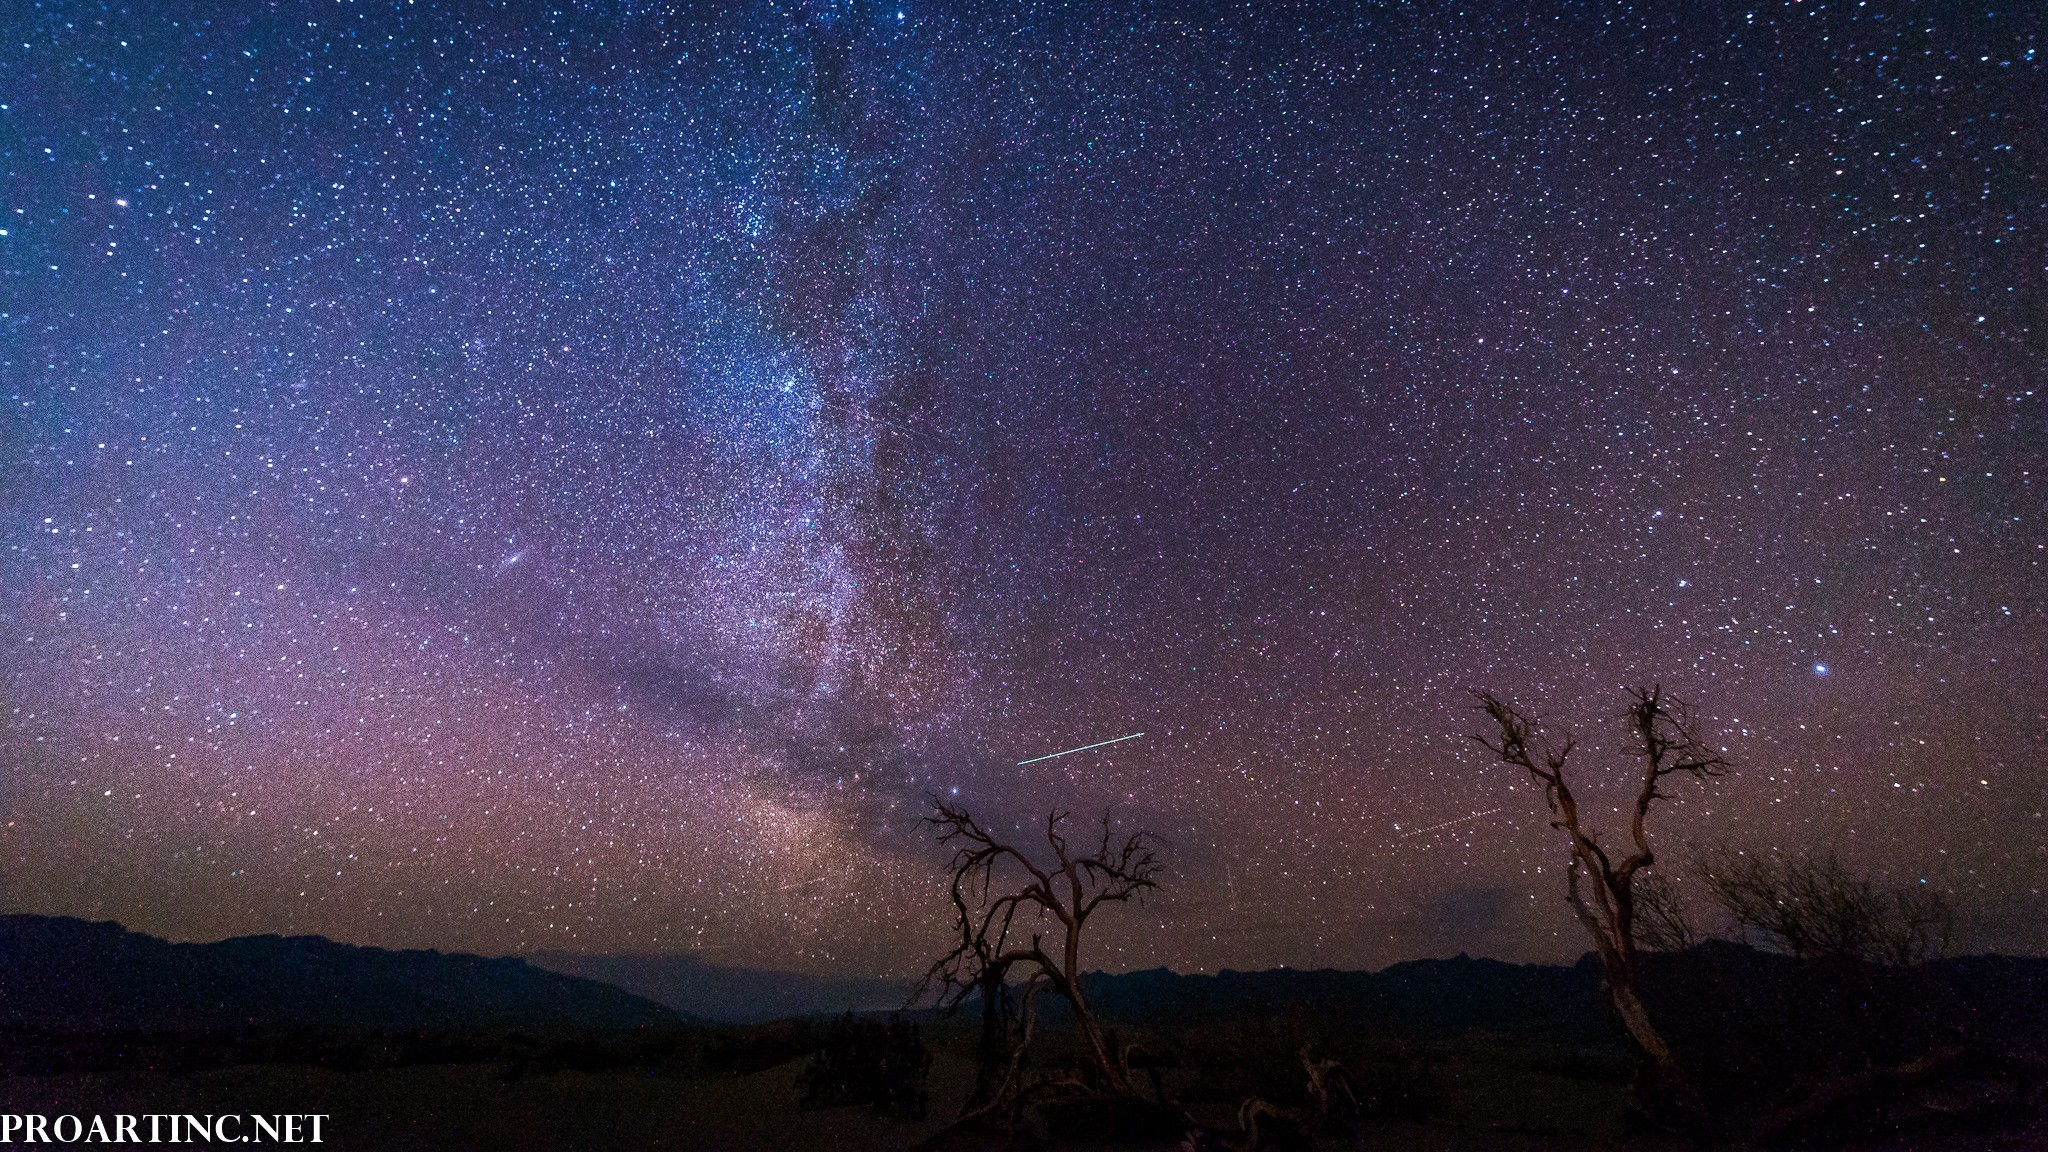 2048x1152 Milky Way at Mesquite Flat Sand Dunes, Death Valley National Park 8K/4K  Screensavers/Wallpapers